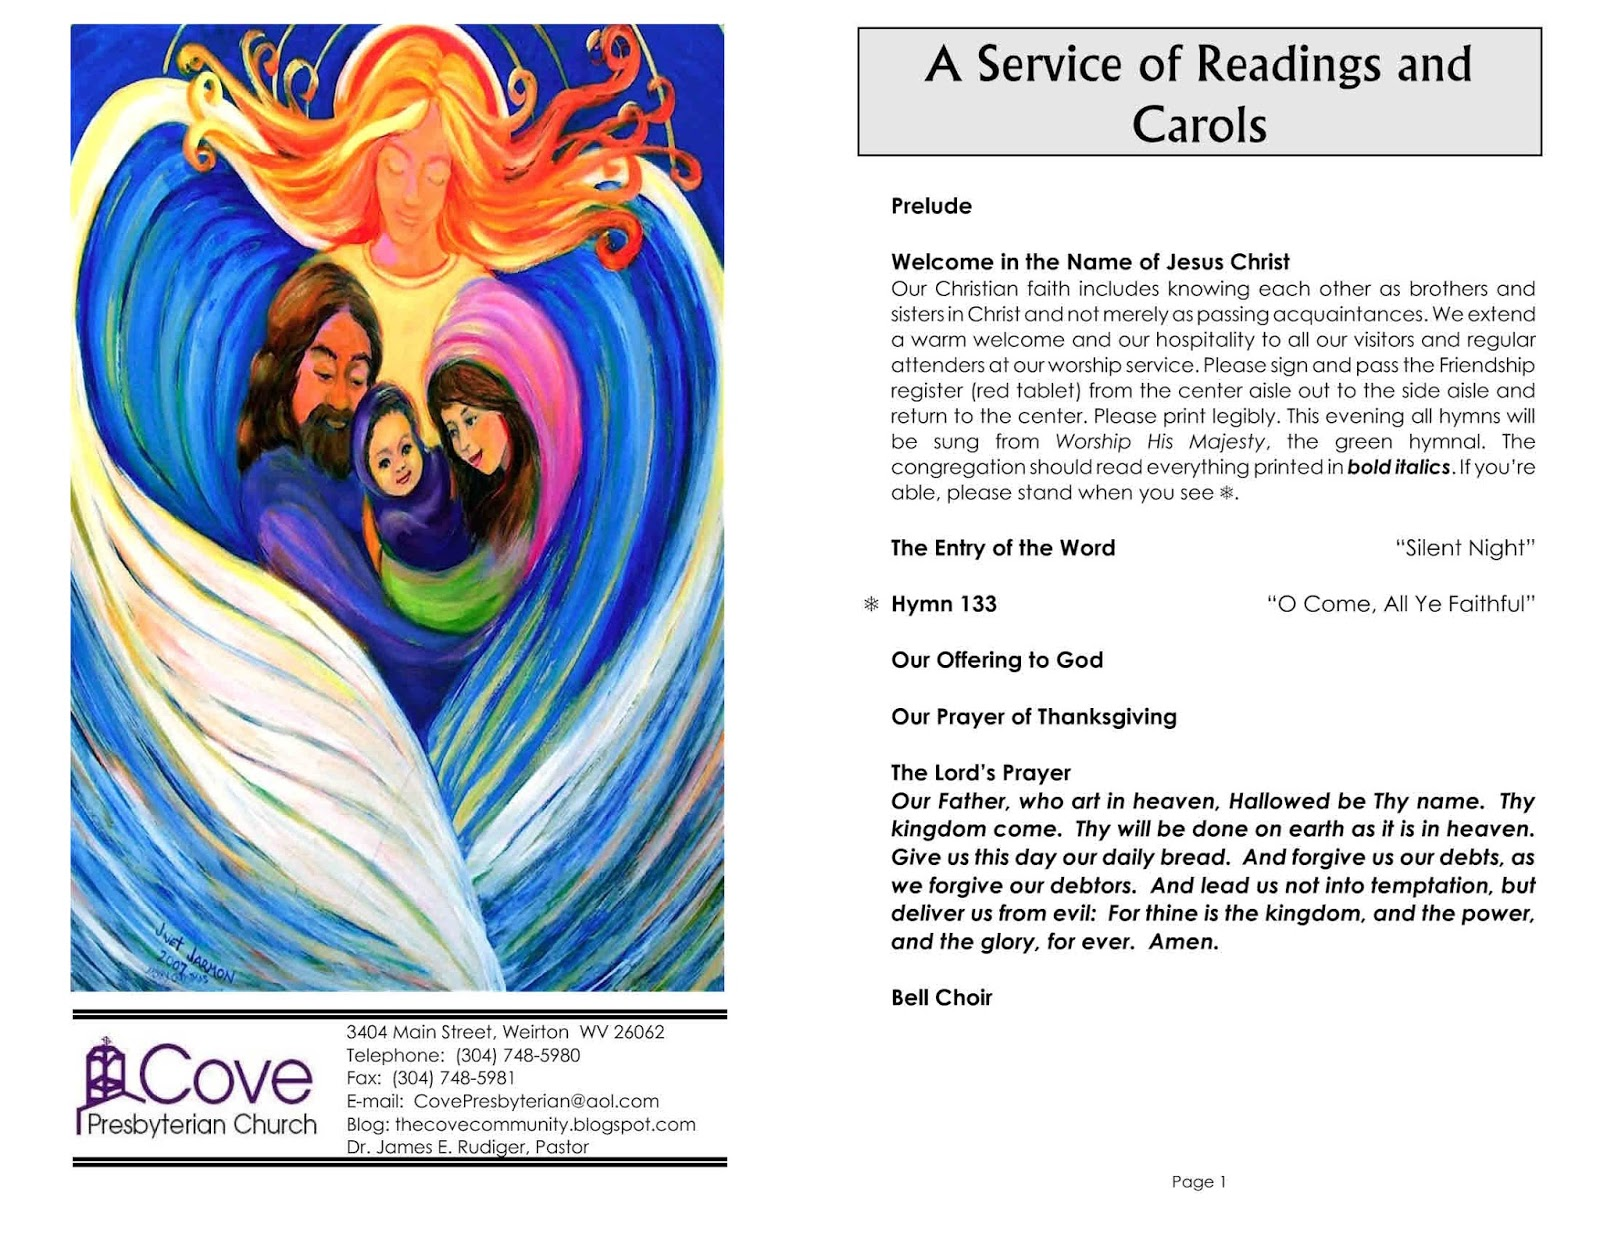 The Cove Community: Cove\'s Bulletin for Christmas Eve, December 24, 2016